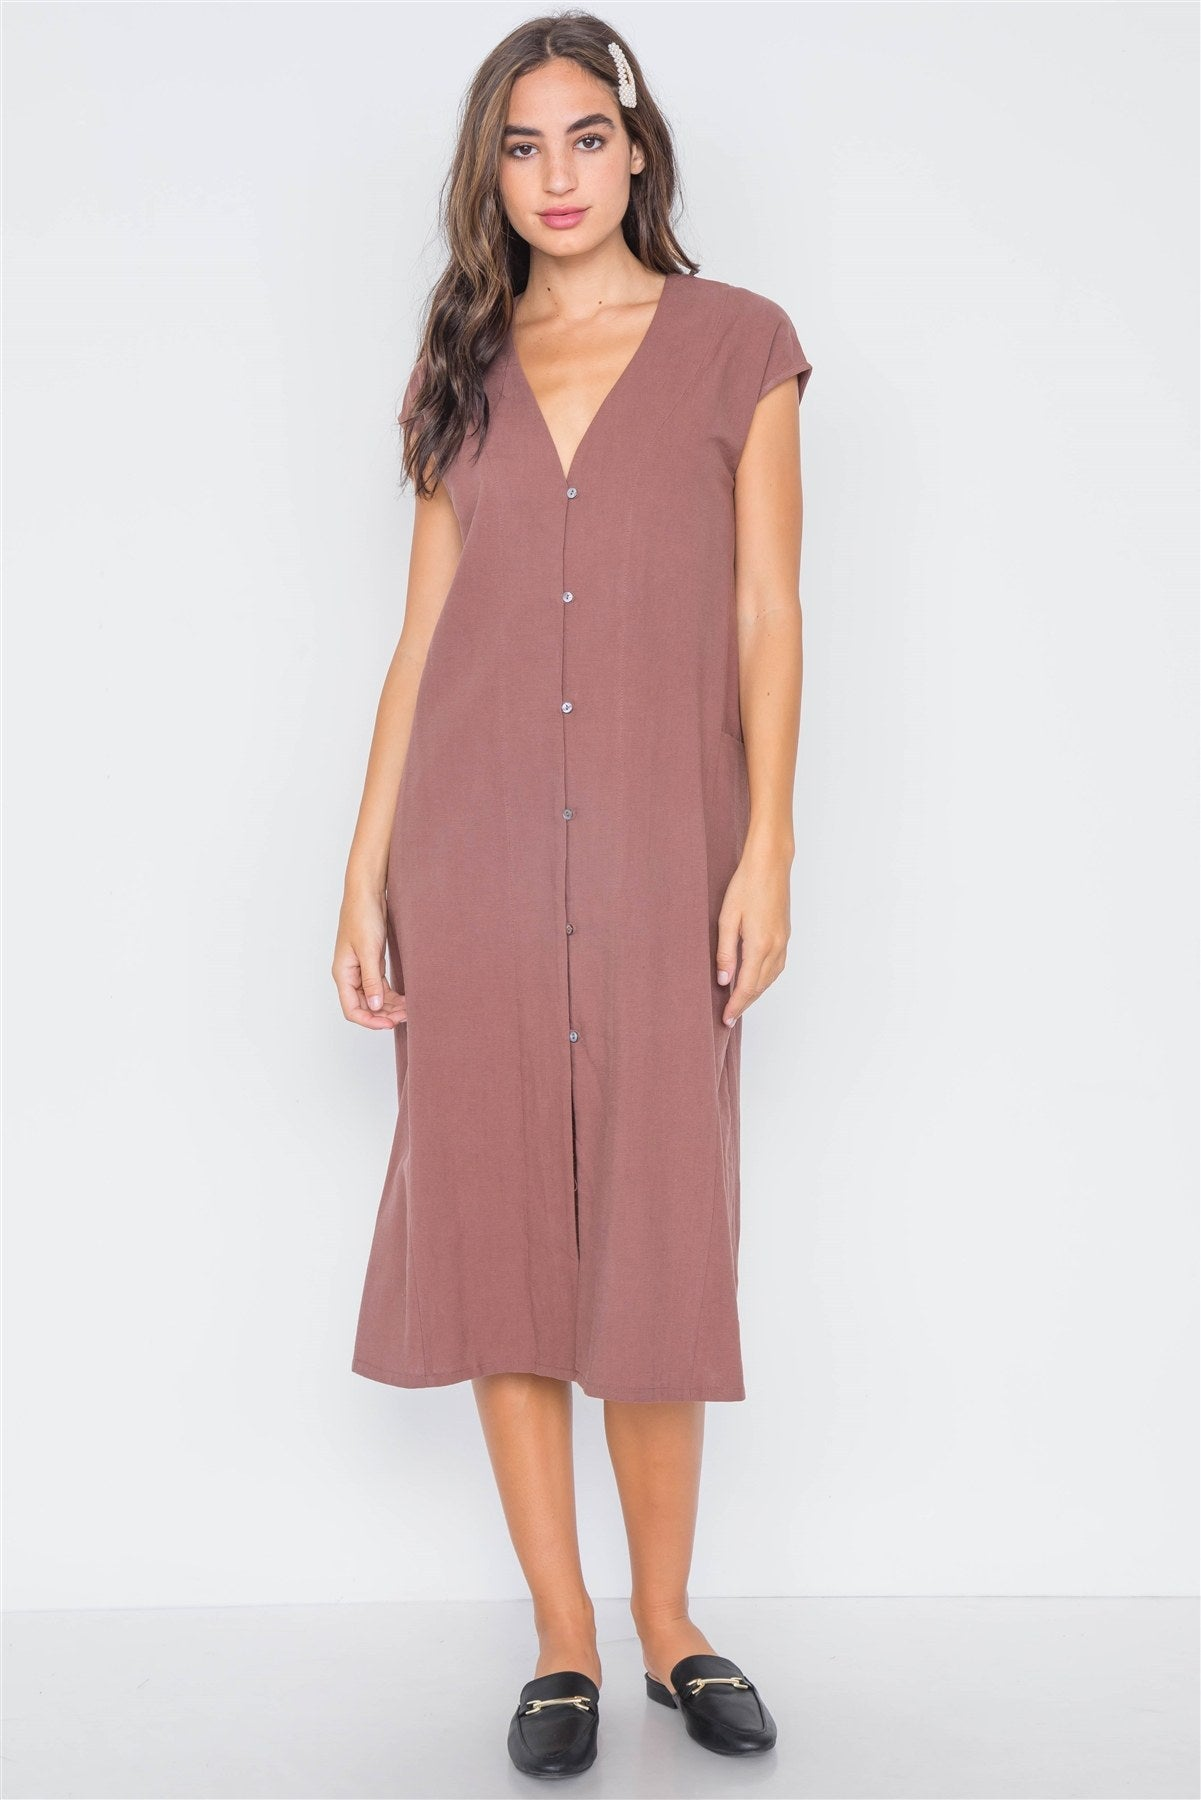 Marsala Button Down Sleeveless Midi Dress - Creole Couture Boutique